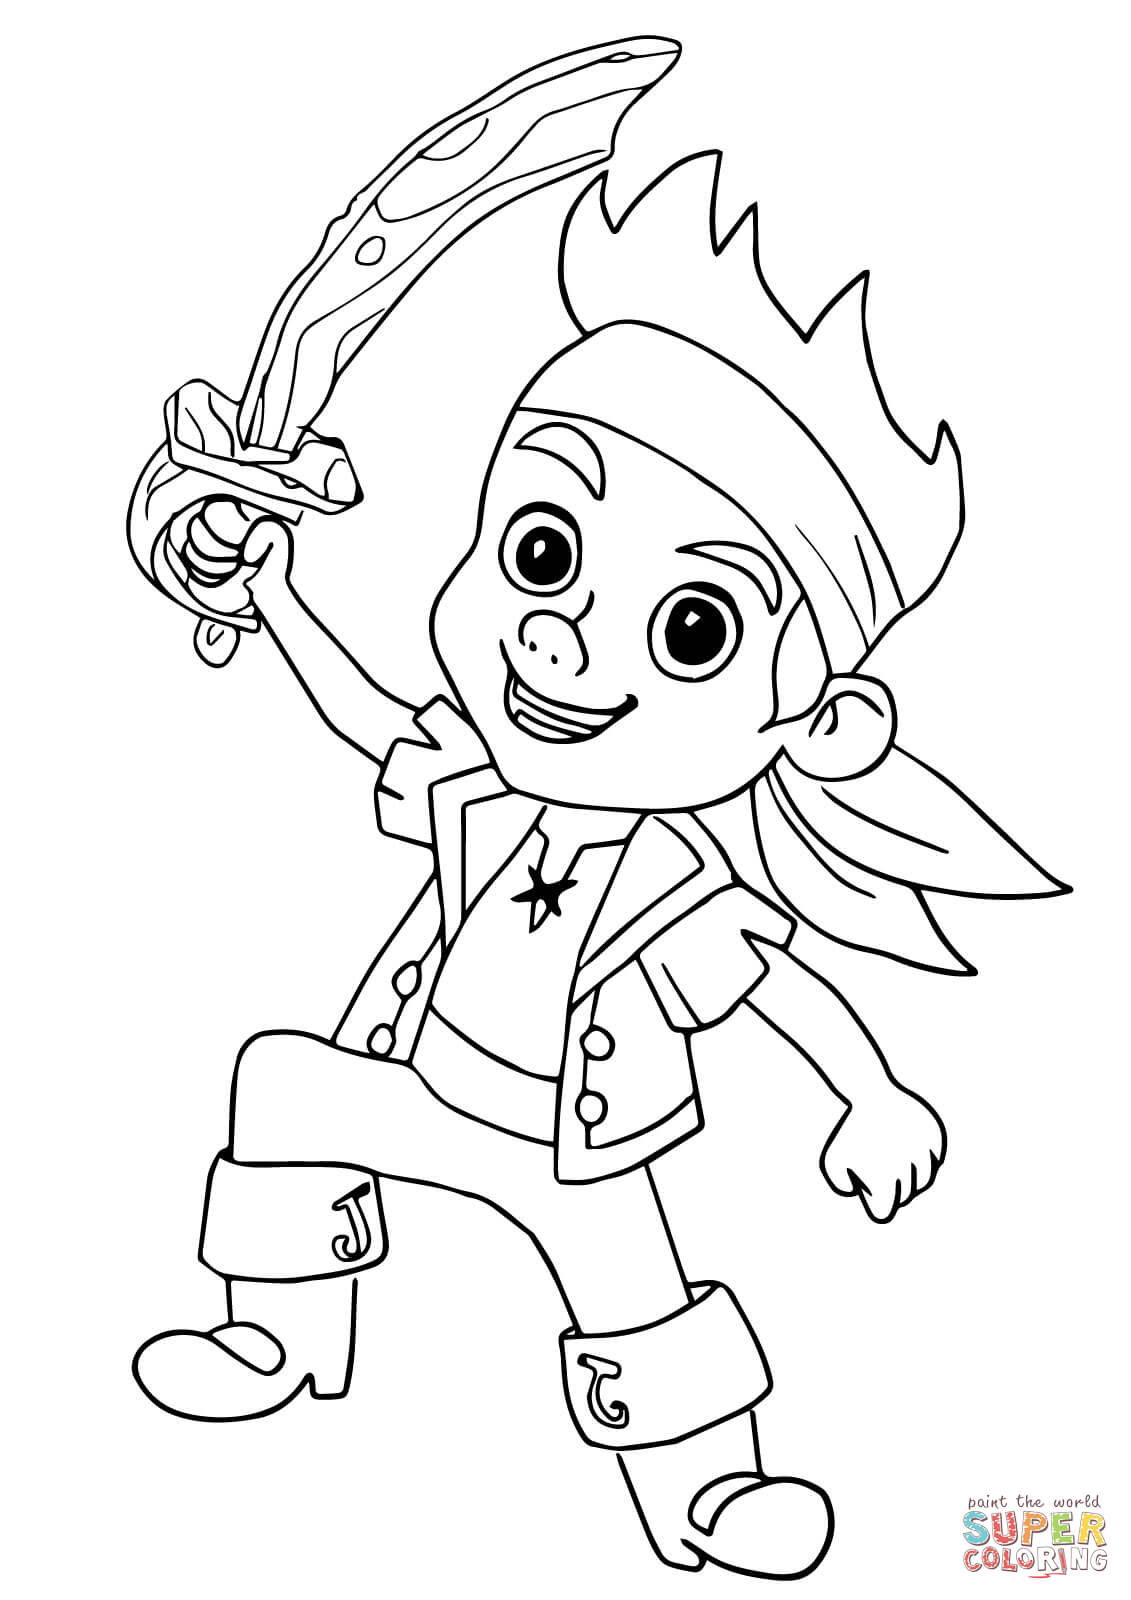 1131x1600 Jake And The Neverland Pirates Coloring Pages For Children